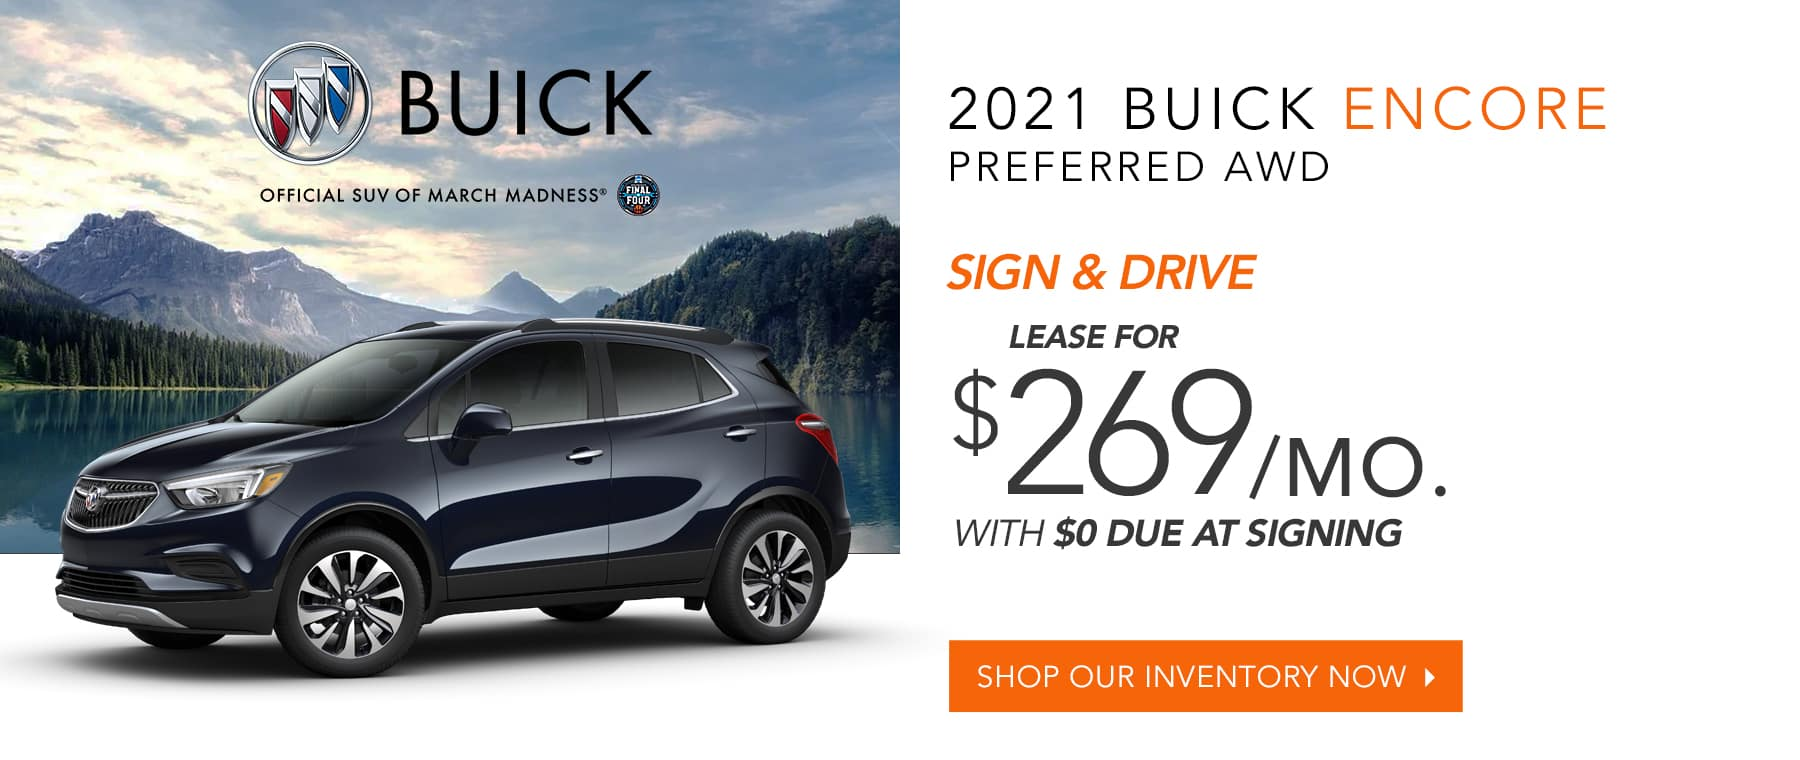 HURD_1800x760_New 2021 Buick Encore GX Preferred AWD-0221